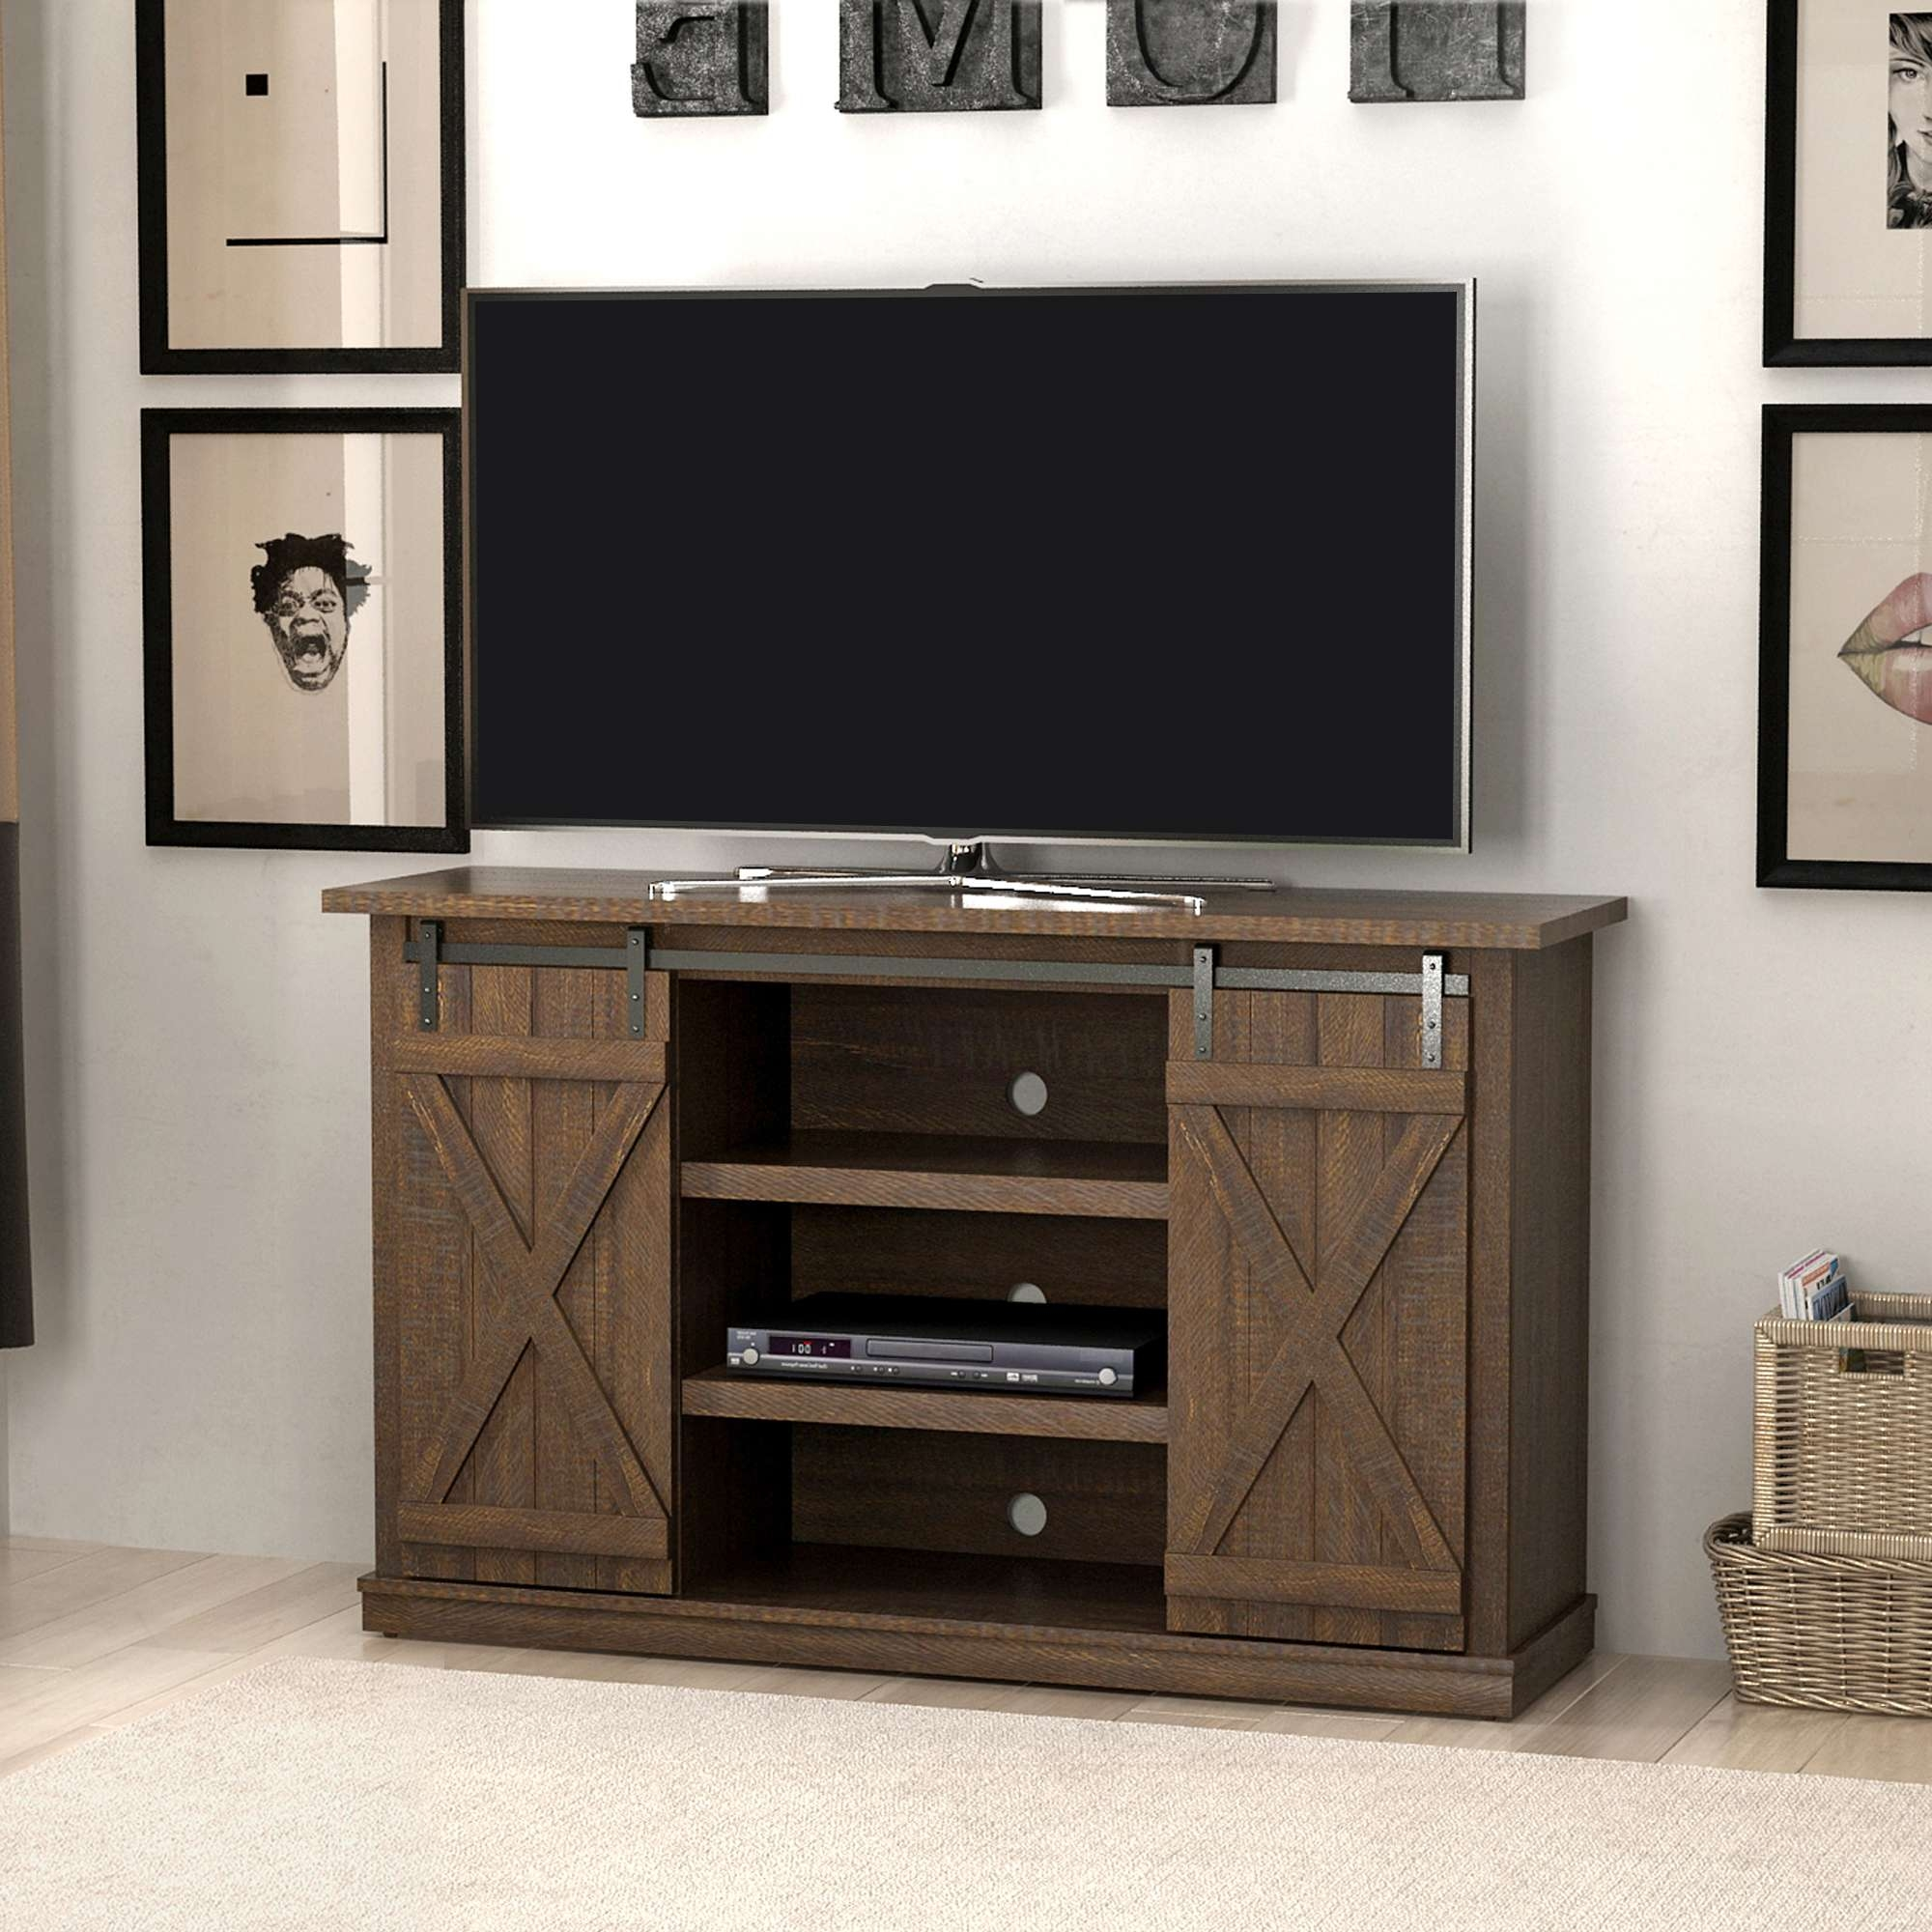 Tv Stands – Walmart Throughout Modern Tv Stands For 60 Inch Tvs (View 10 of 15)